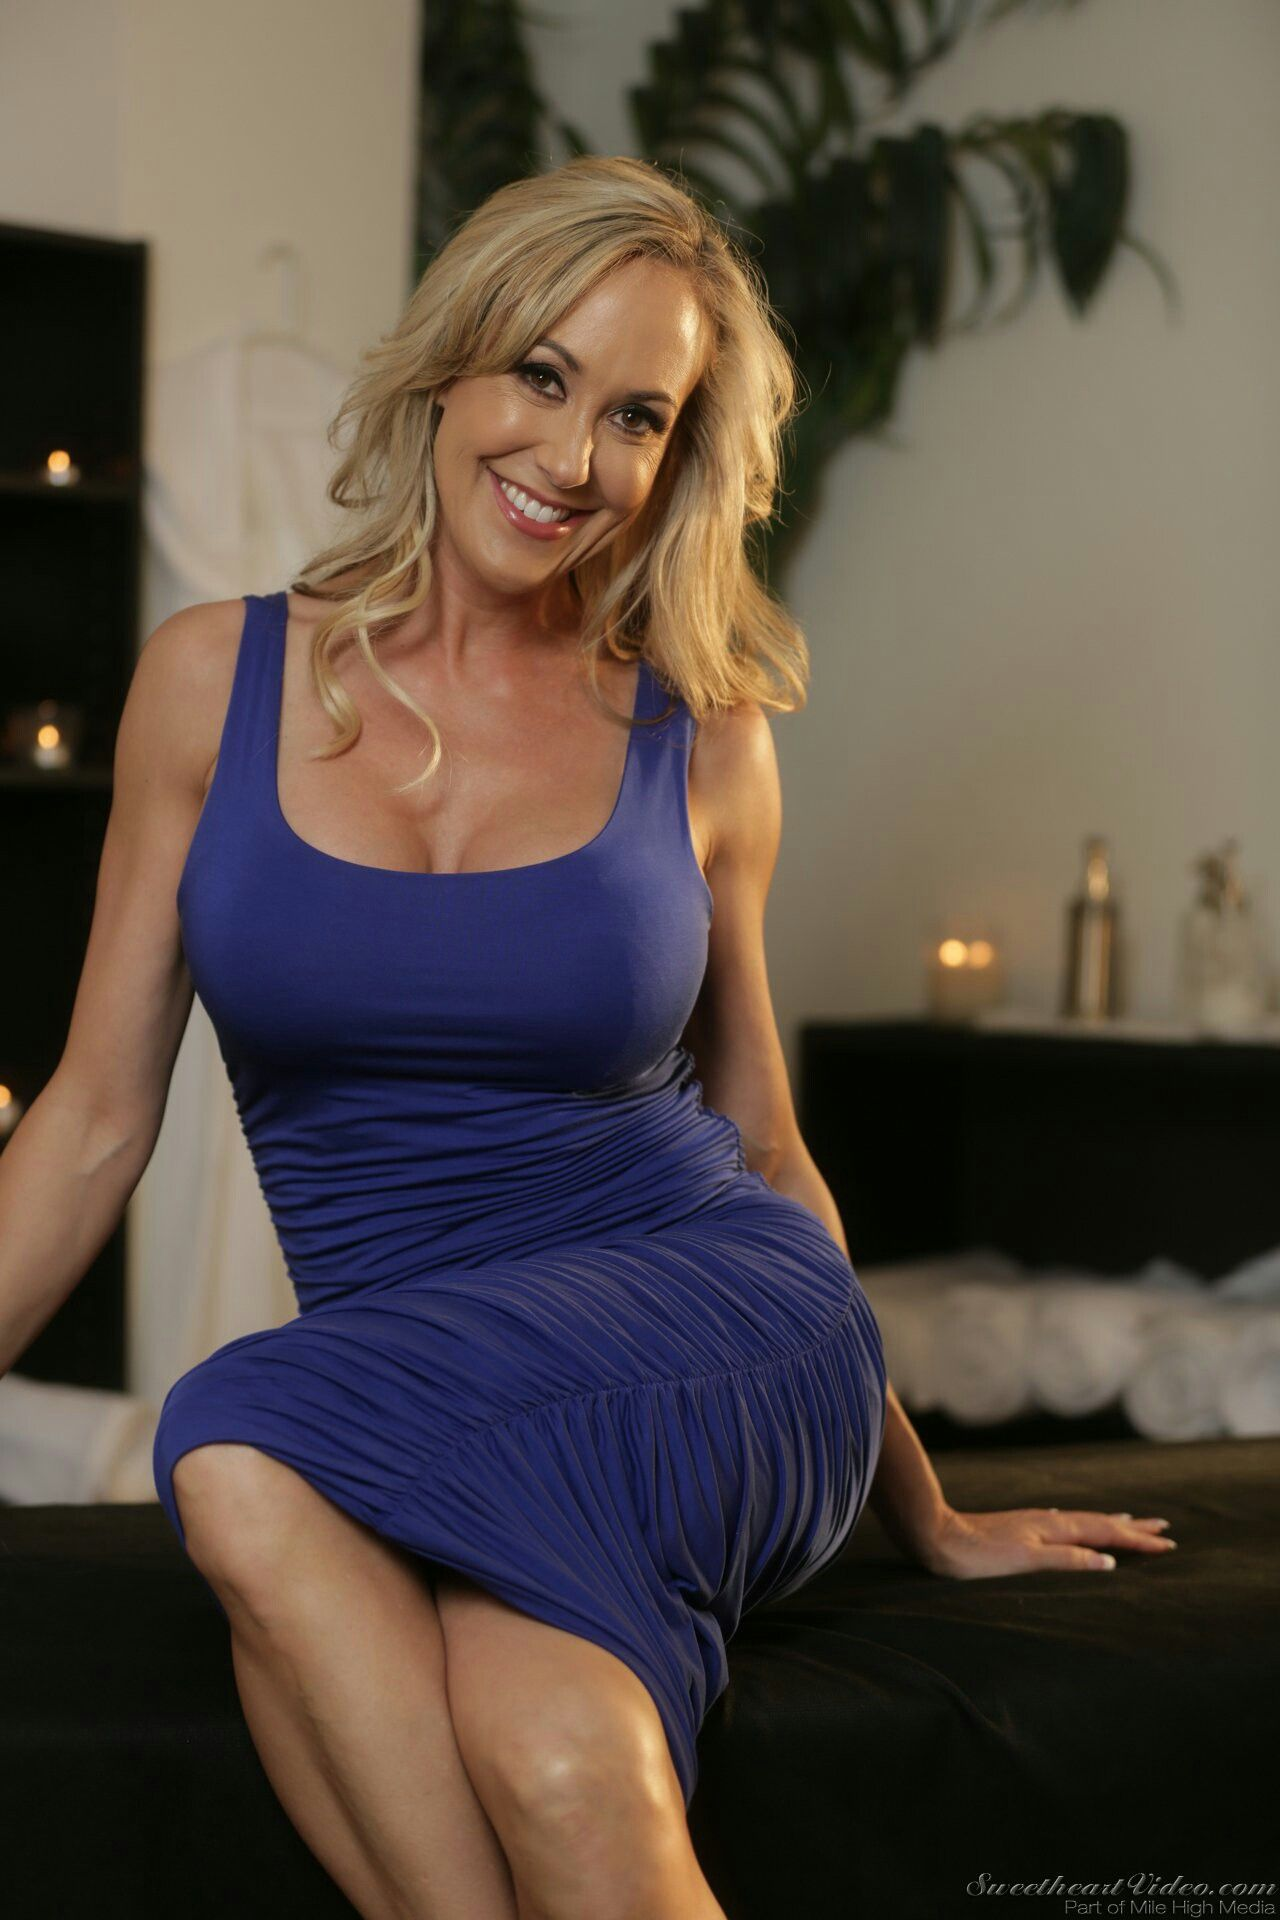 Brandi Love Growing Older Gracefully and Keeping The